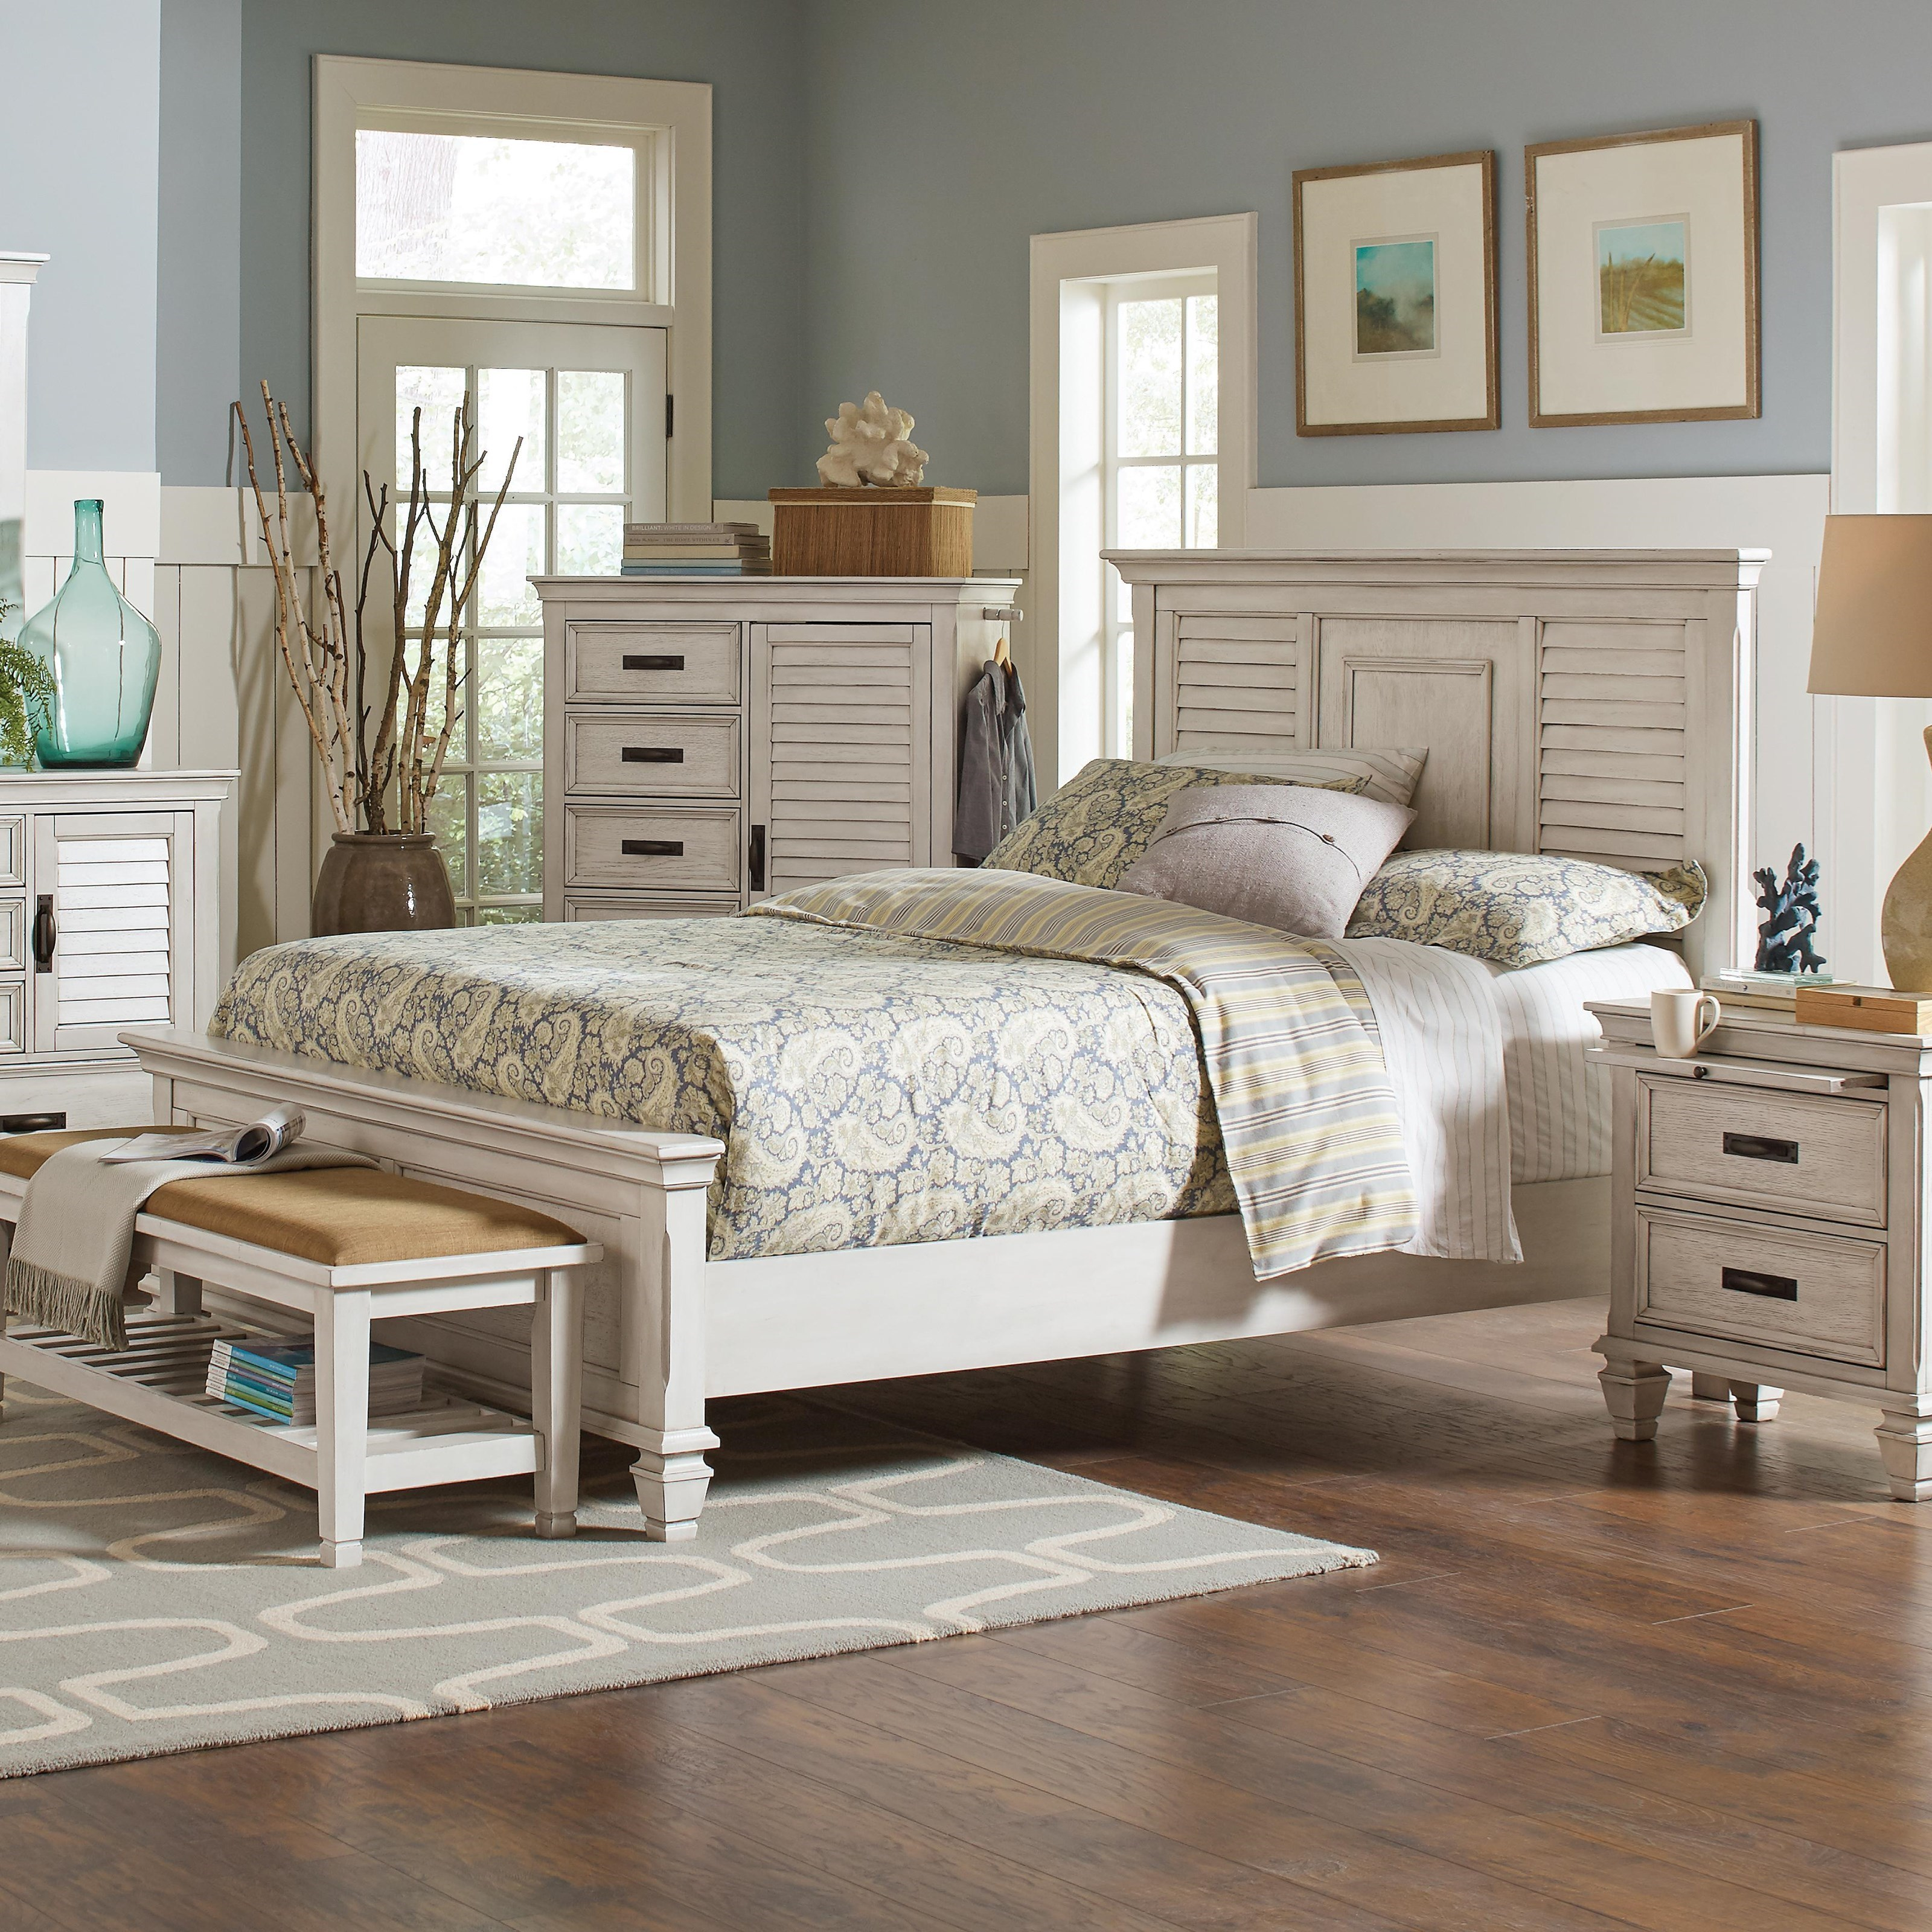 Franco Queen Bed by Coaster at Northeast Factory Direct